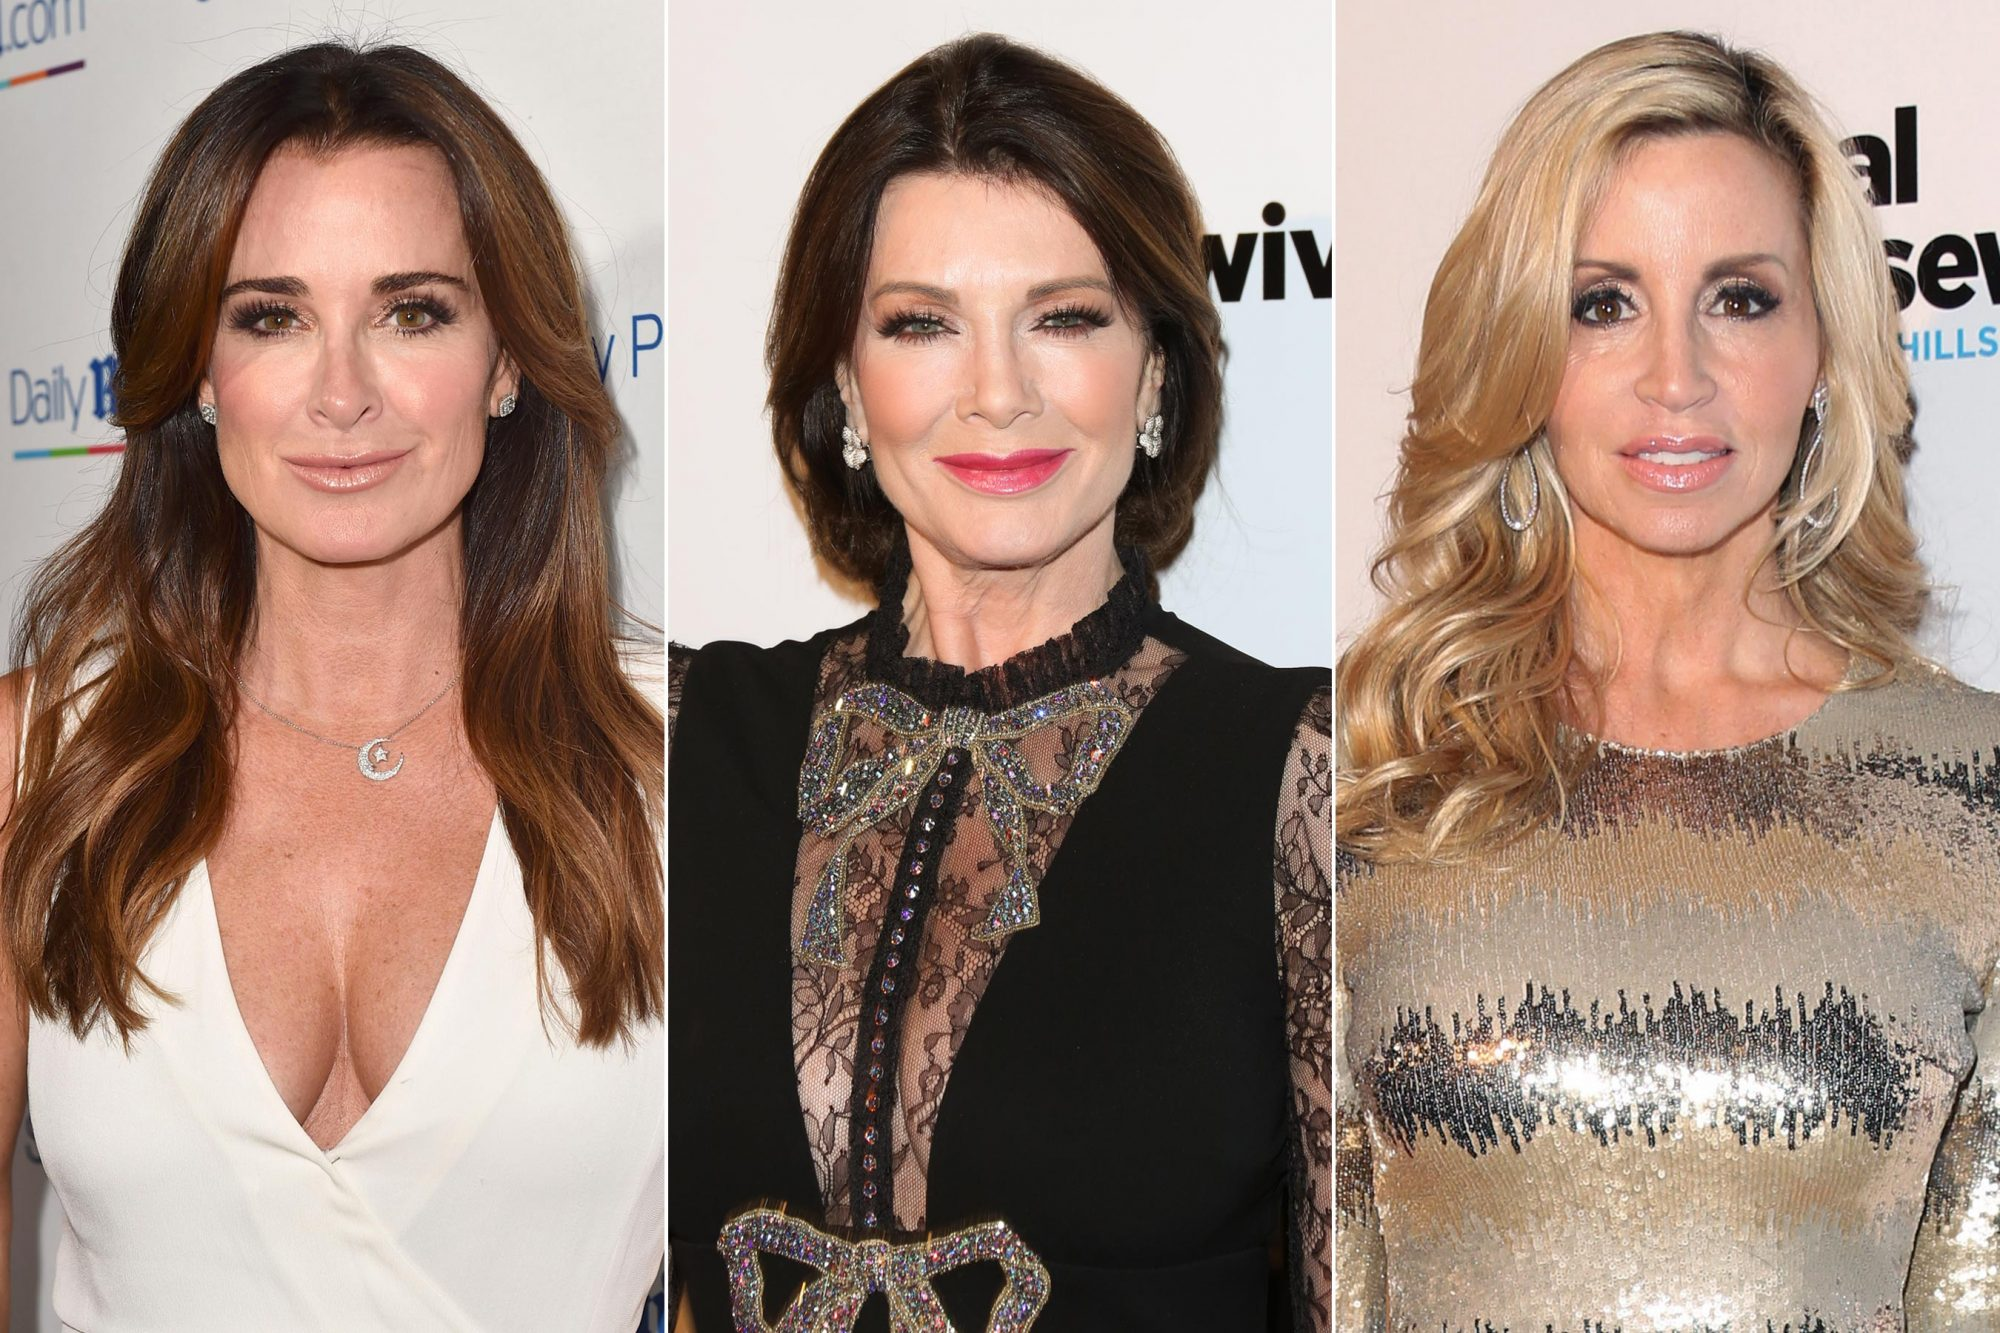 Lisa Vanderpump, Camille Grammer, Kyle Richards